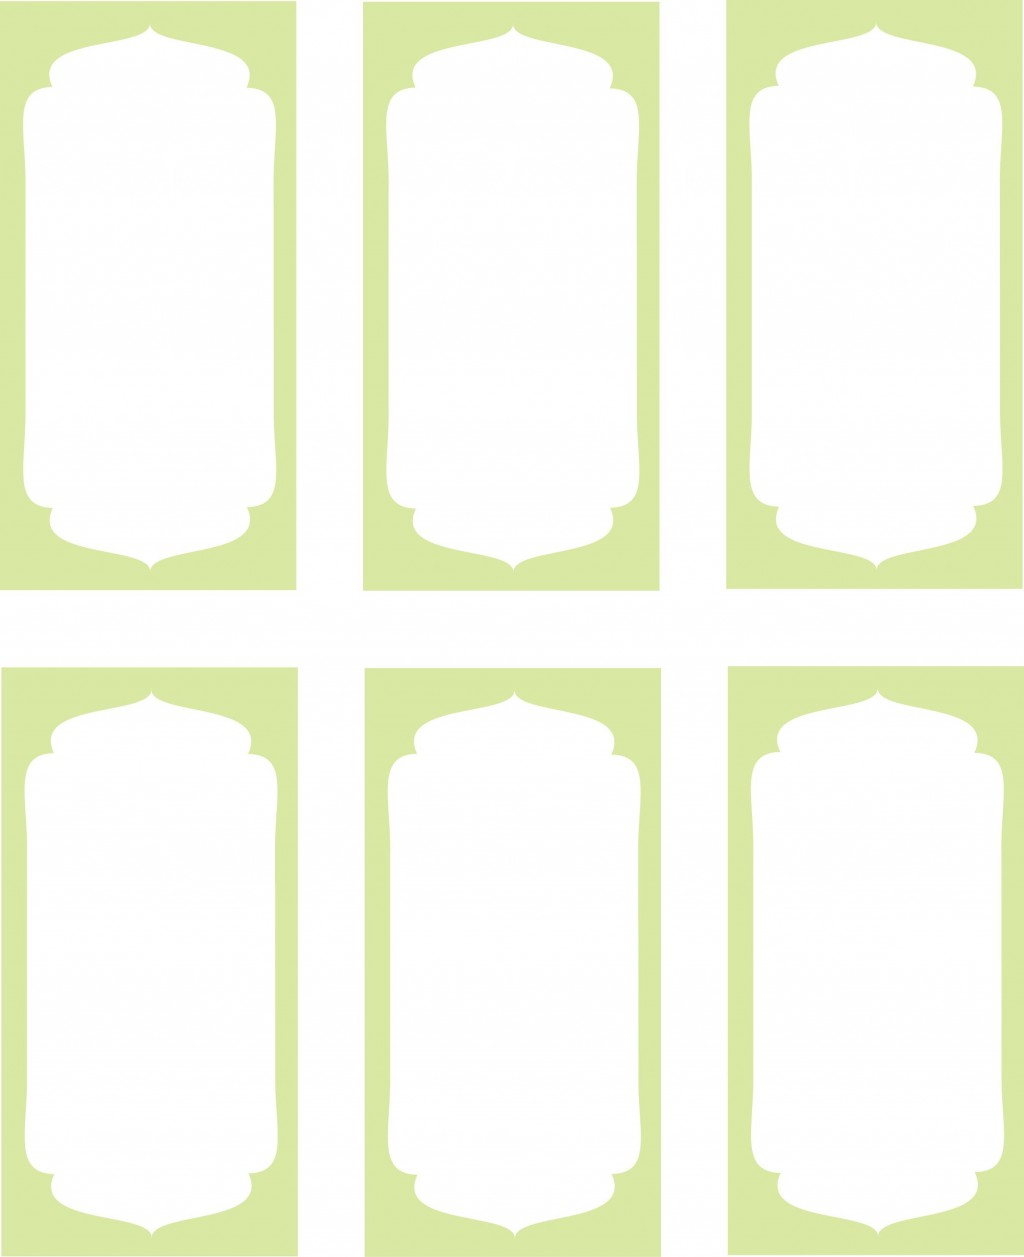 008 Unbelievable Addres Label Template Free Download Photo  Downloads Avery PsdLarge